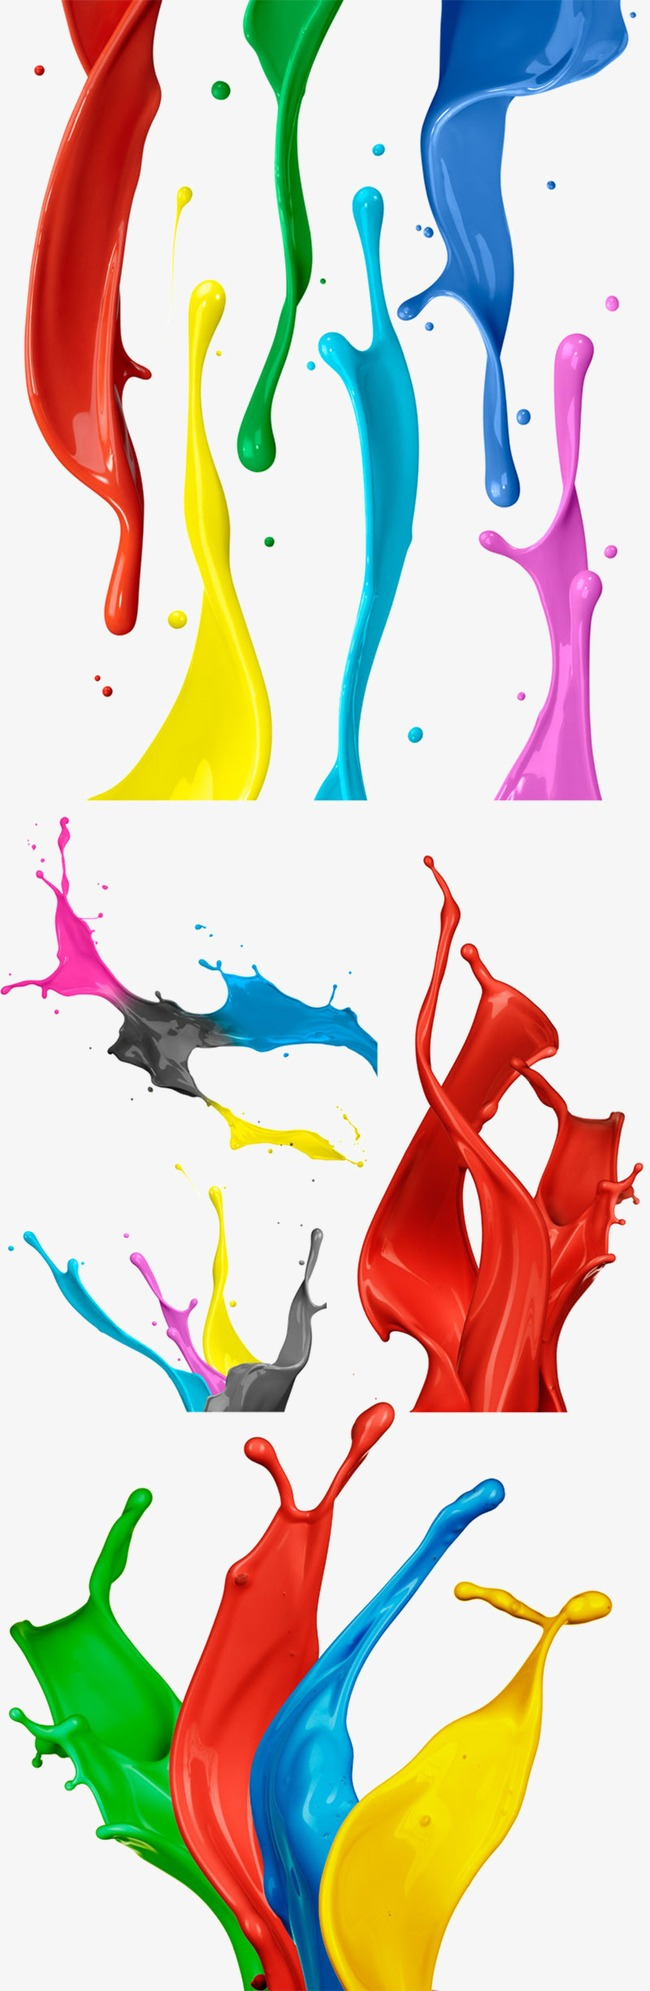 650x1991 Color Splash Png, Vectors, Psd, And Icons For Free Download Pngtree